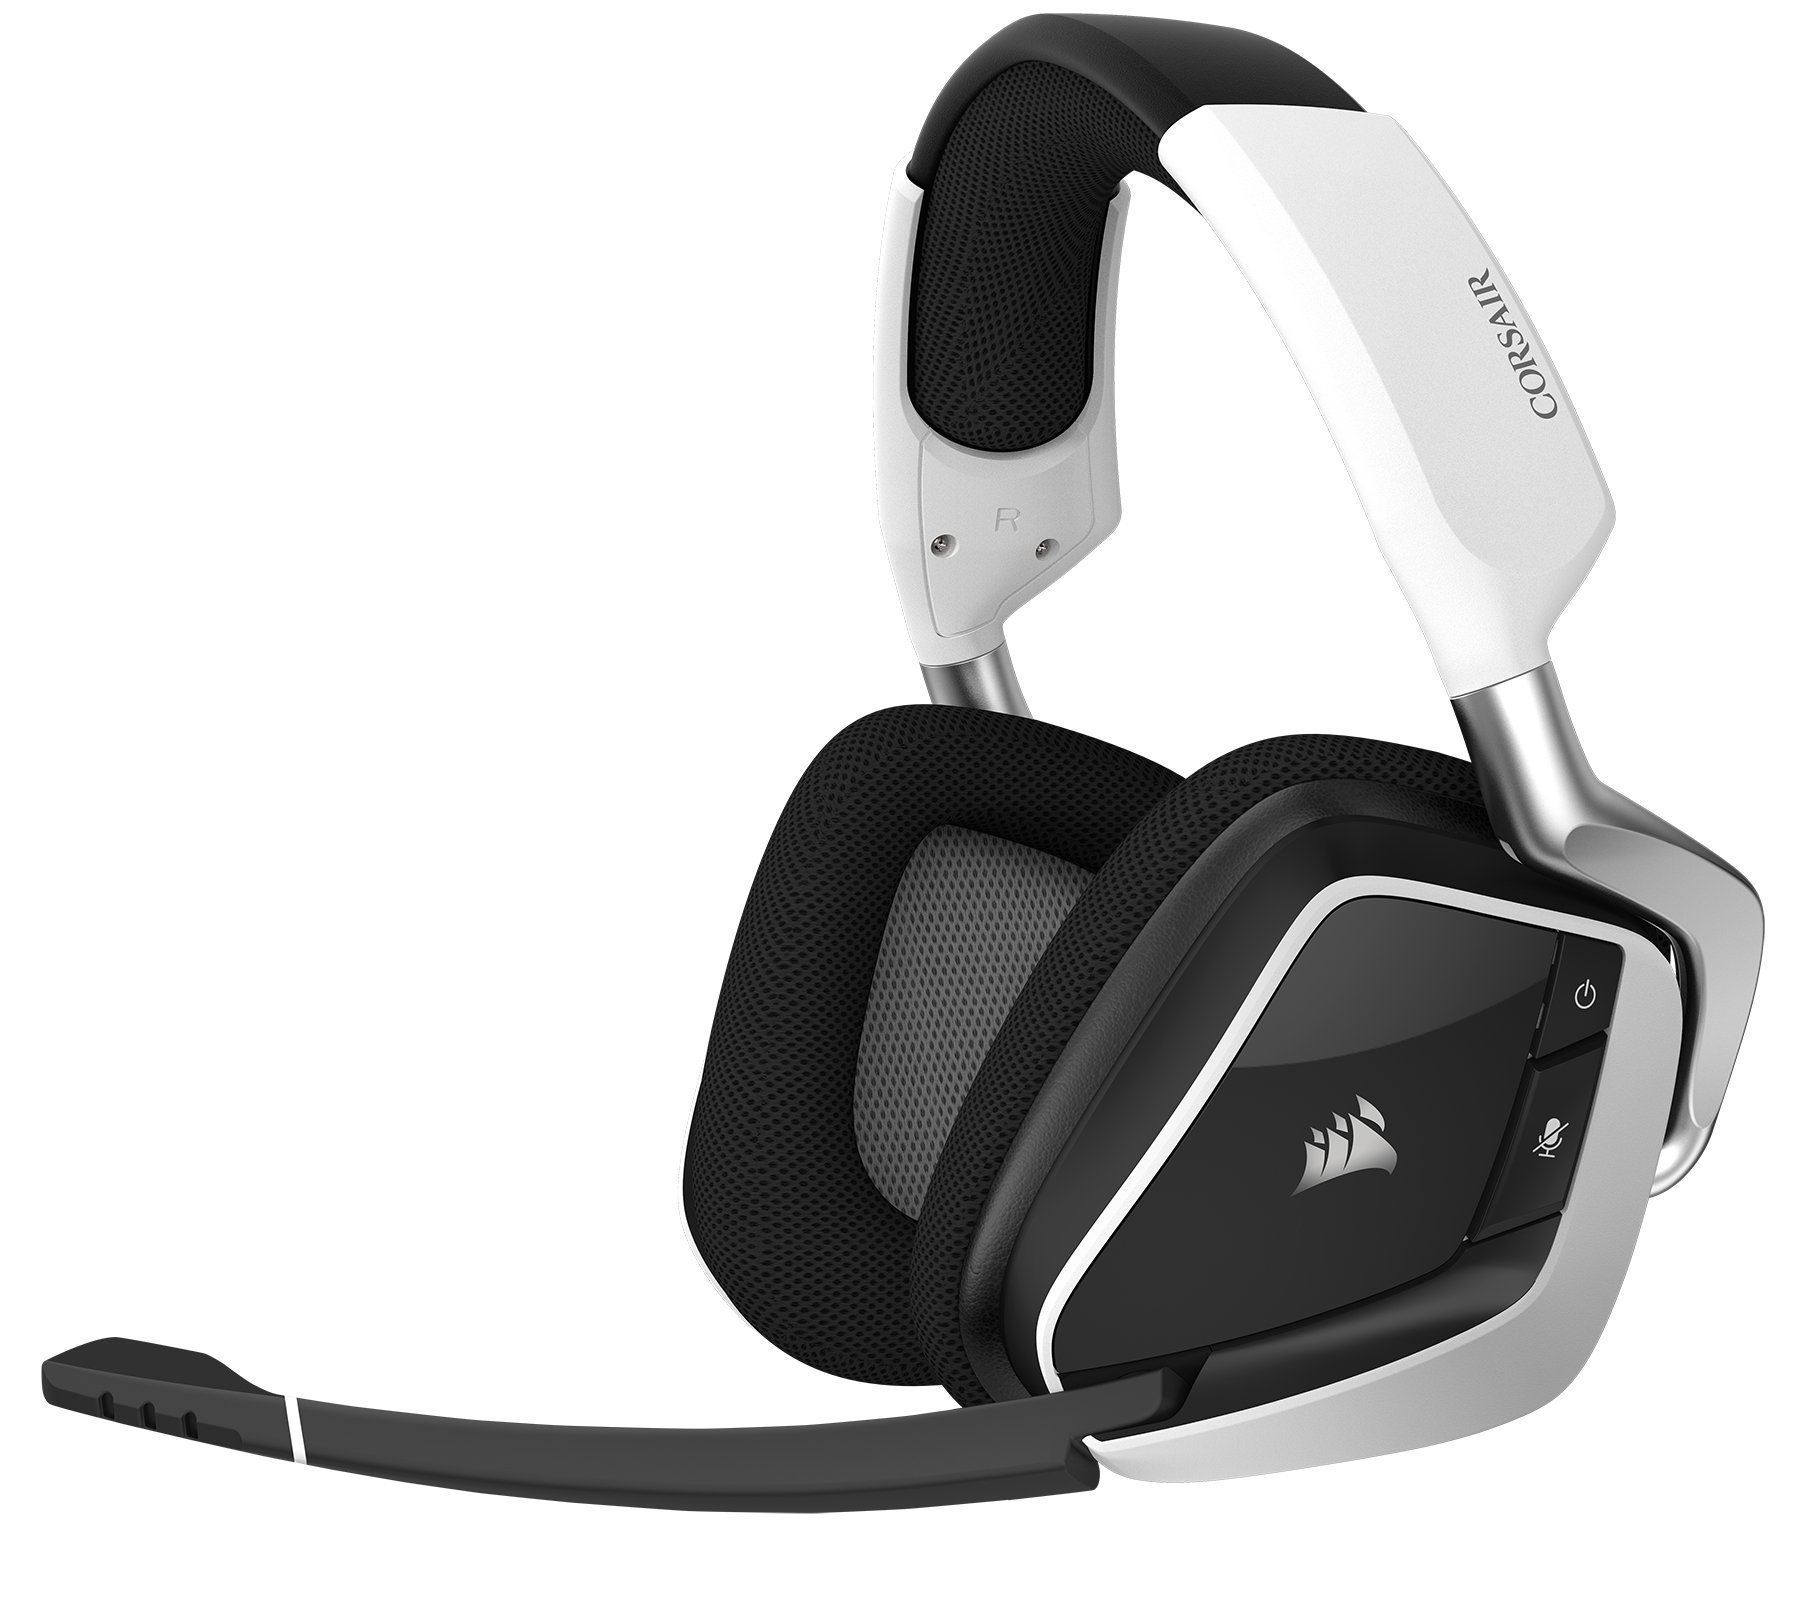 CORSAIR VOID PRO RGB Wireless Gaming Headset - Dolby 7.1 Surround Sound Headphones for PC - Discord - 50mm Drivers - White (Renewed) by Corsair